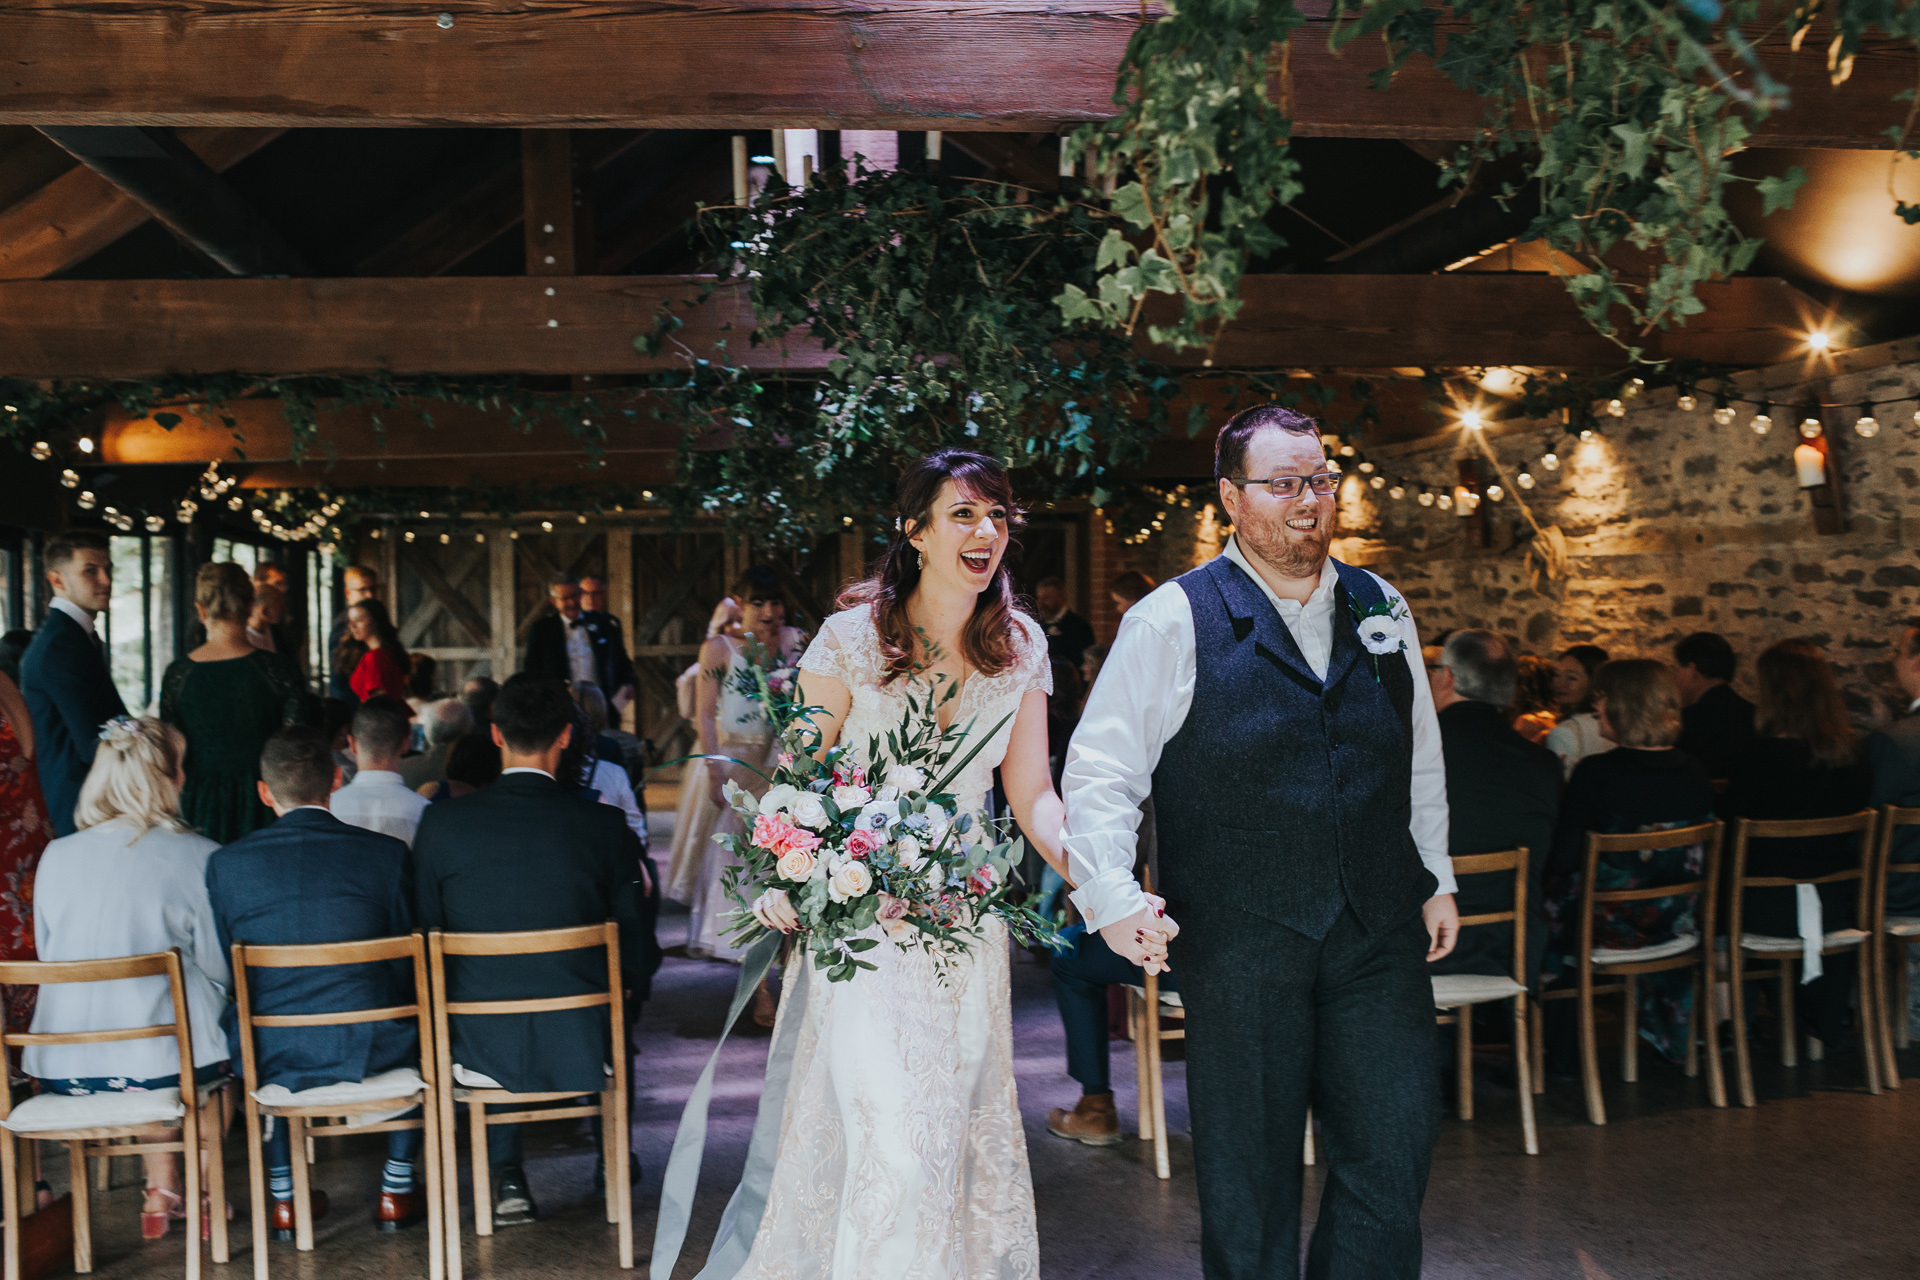 Bride and Groom exit the aisle at Dewsall Court